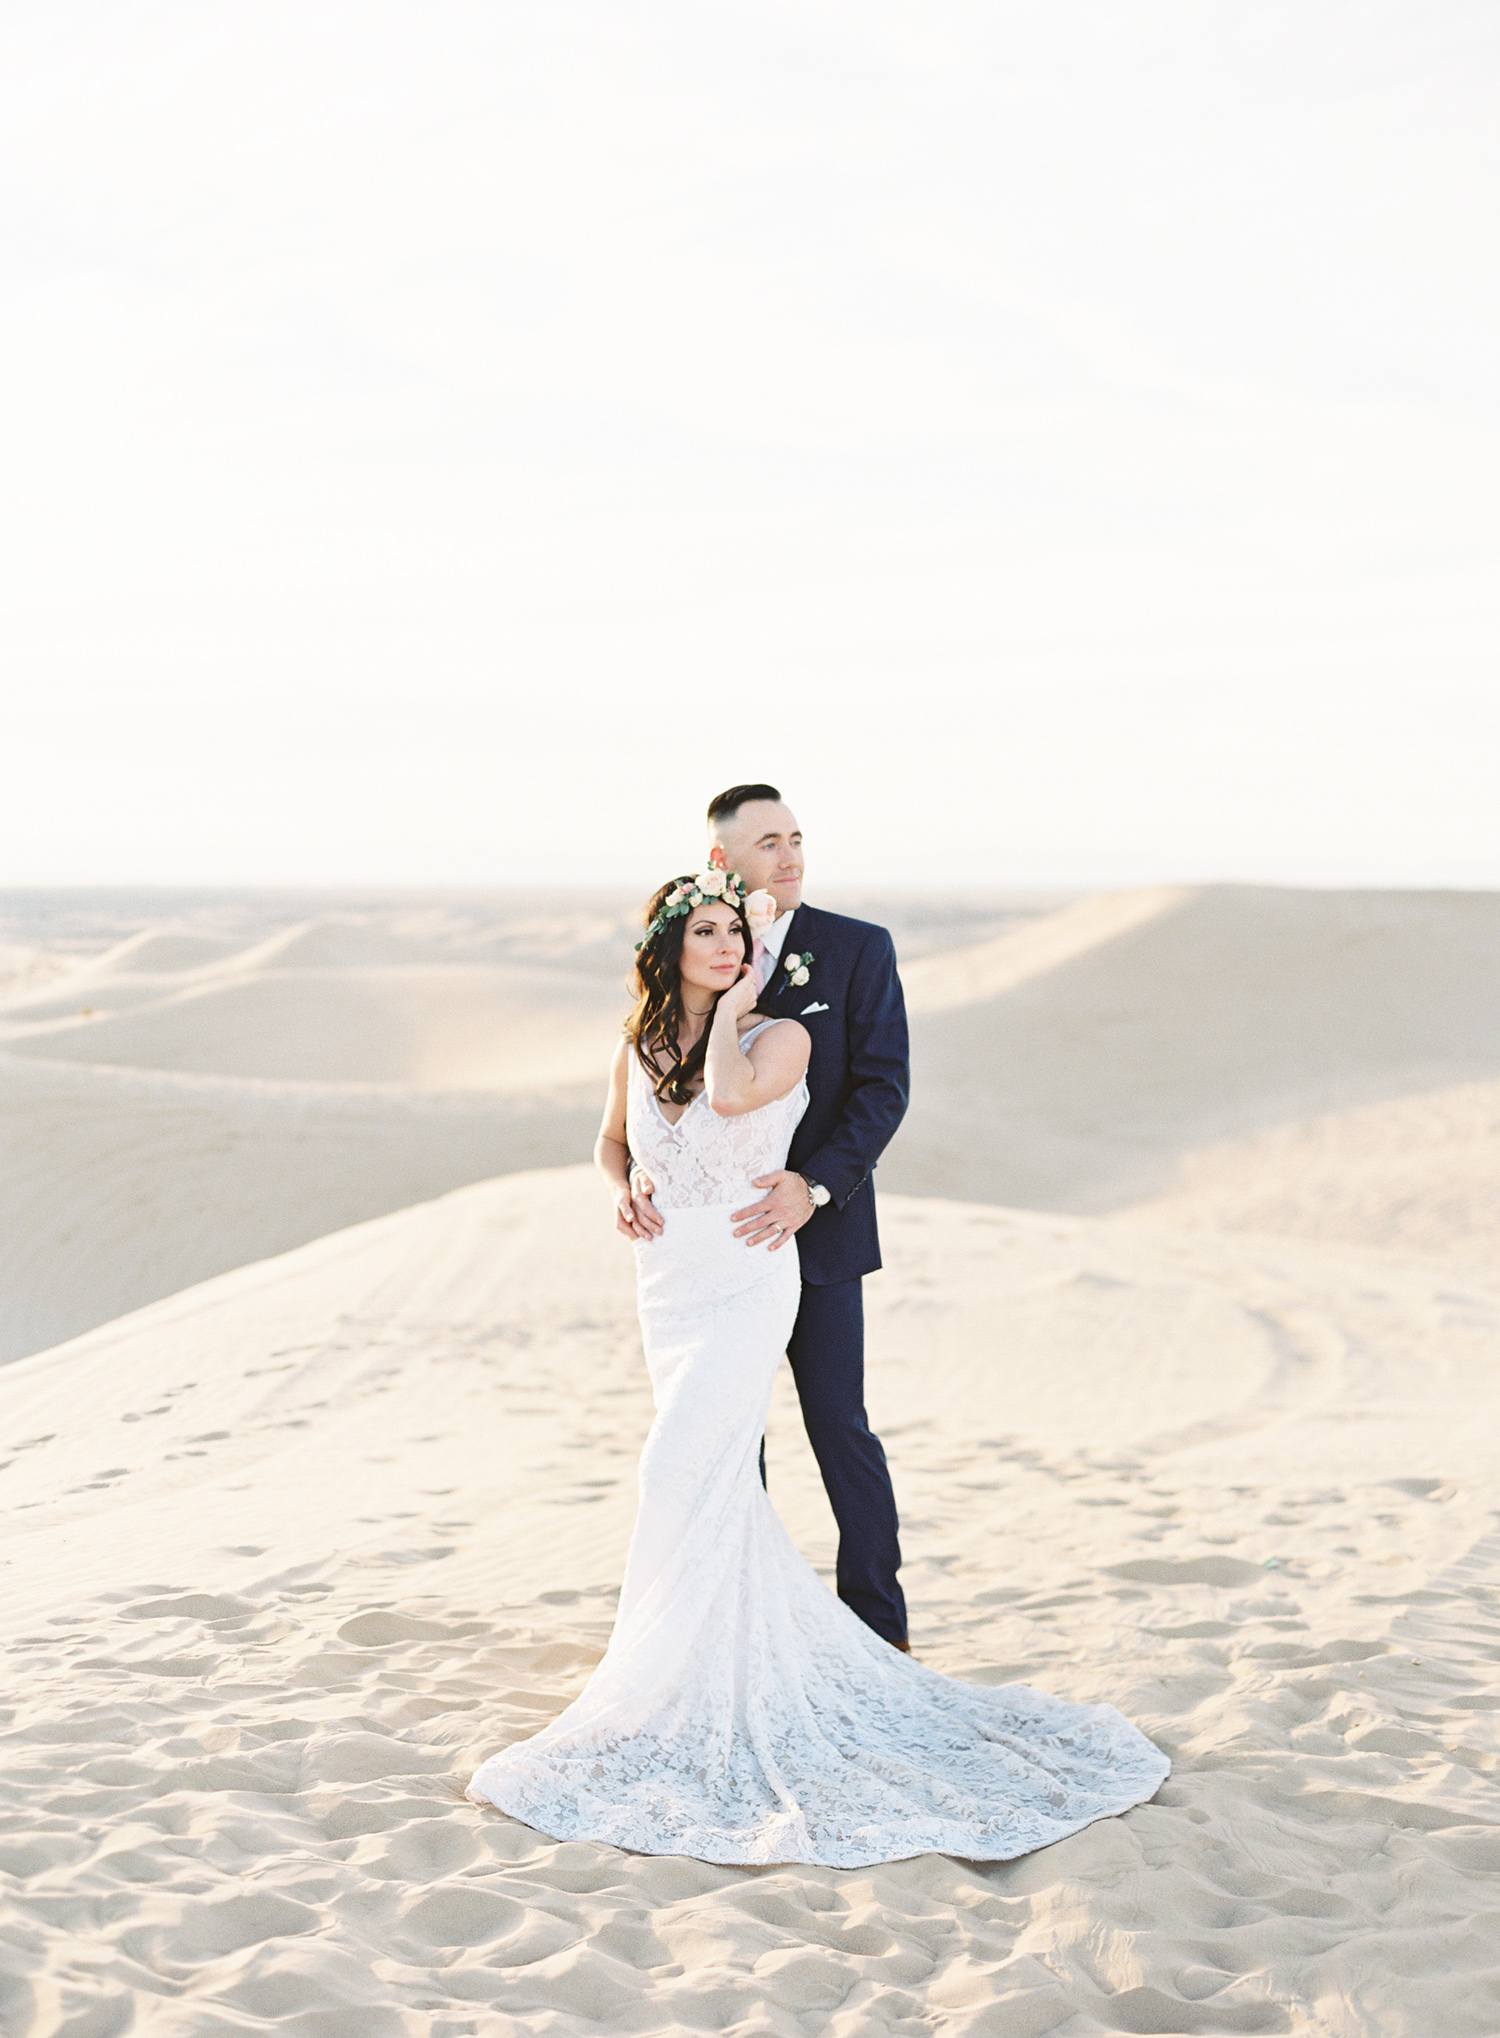 Orange County Wedding Photographer | Temecula Wedding Photographer | Joshua Tree Wedding Photographer | Palm Springs Wedding Photographer | San Diego Wedding Photographer -003.jpg